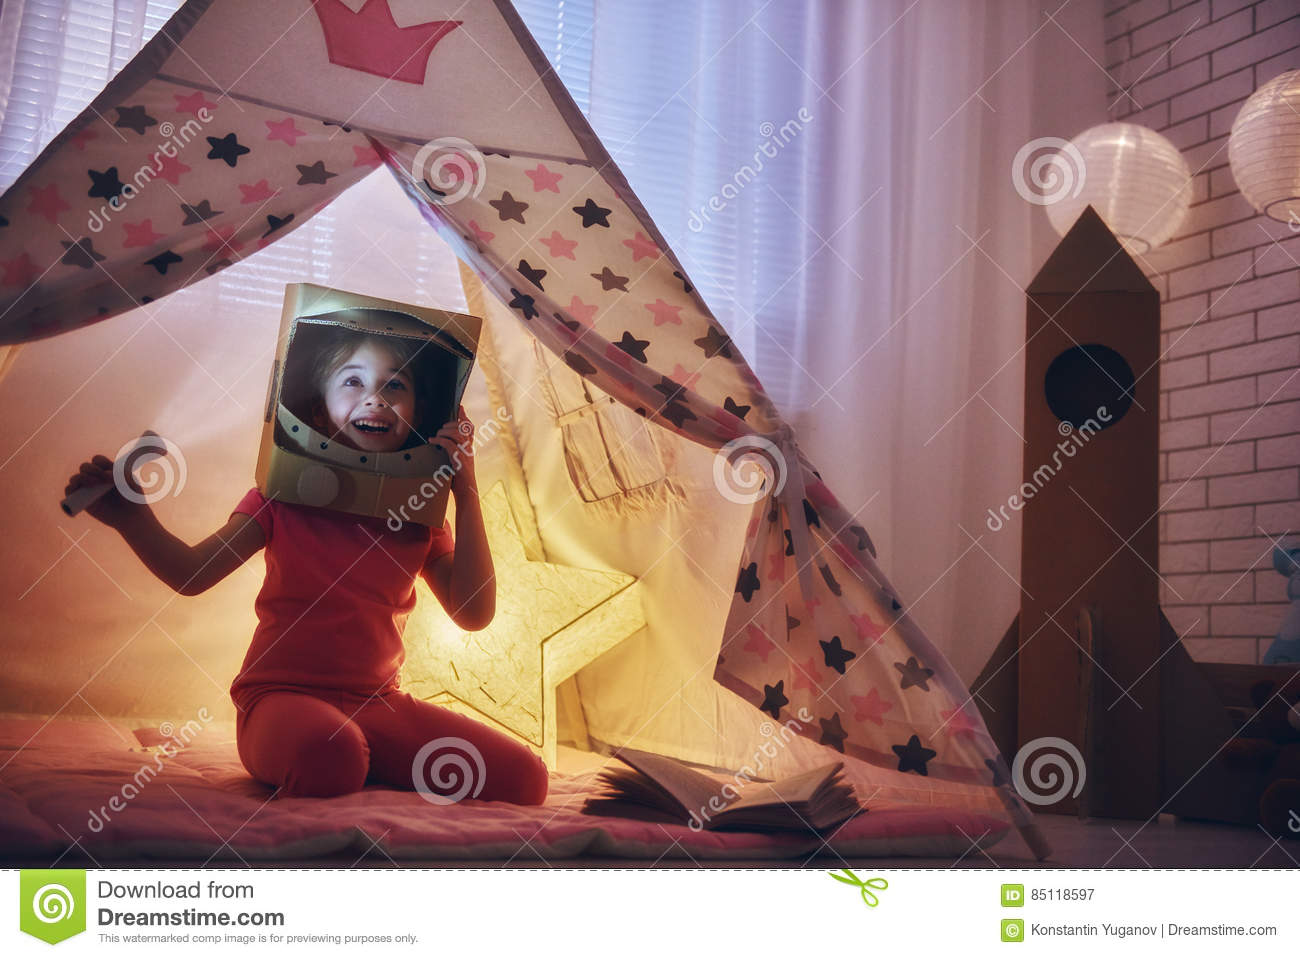 https://thumbs.dreamstime.com/z/girl-astronaut-costume-child-playing-dreaming-becoming-spacemen-happy-kid-plays-tent-funny-lovely-having-fun-85118597.jpg